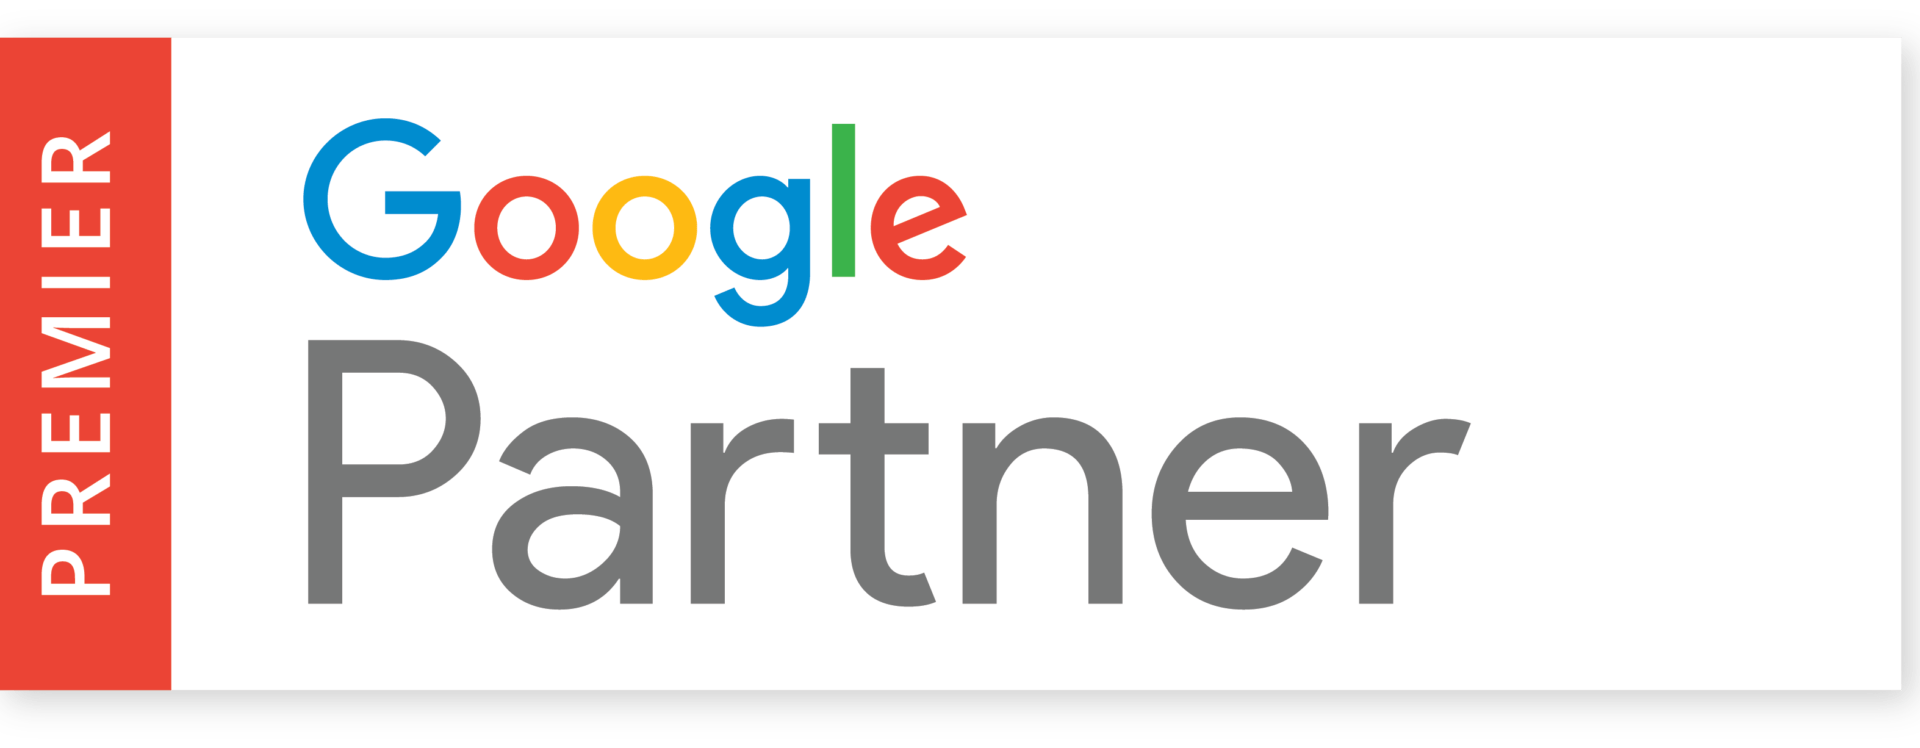 Google Partner Premier - John Cochrane Advertising